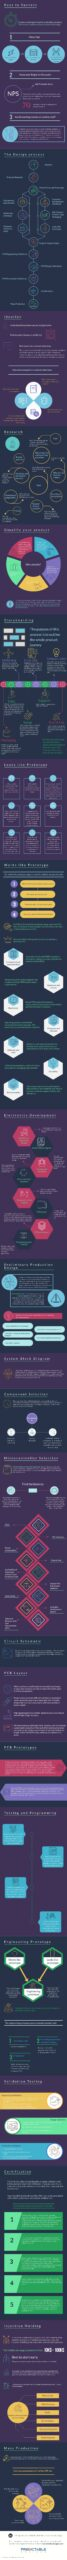 infographic showing the journey from idea to market for a hardware product